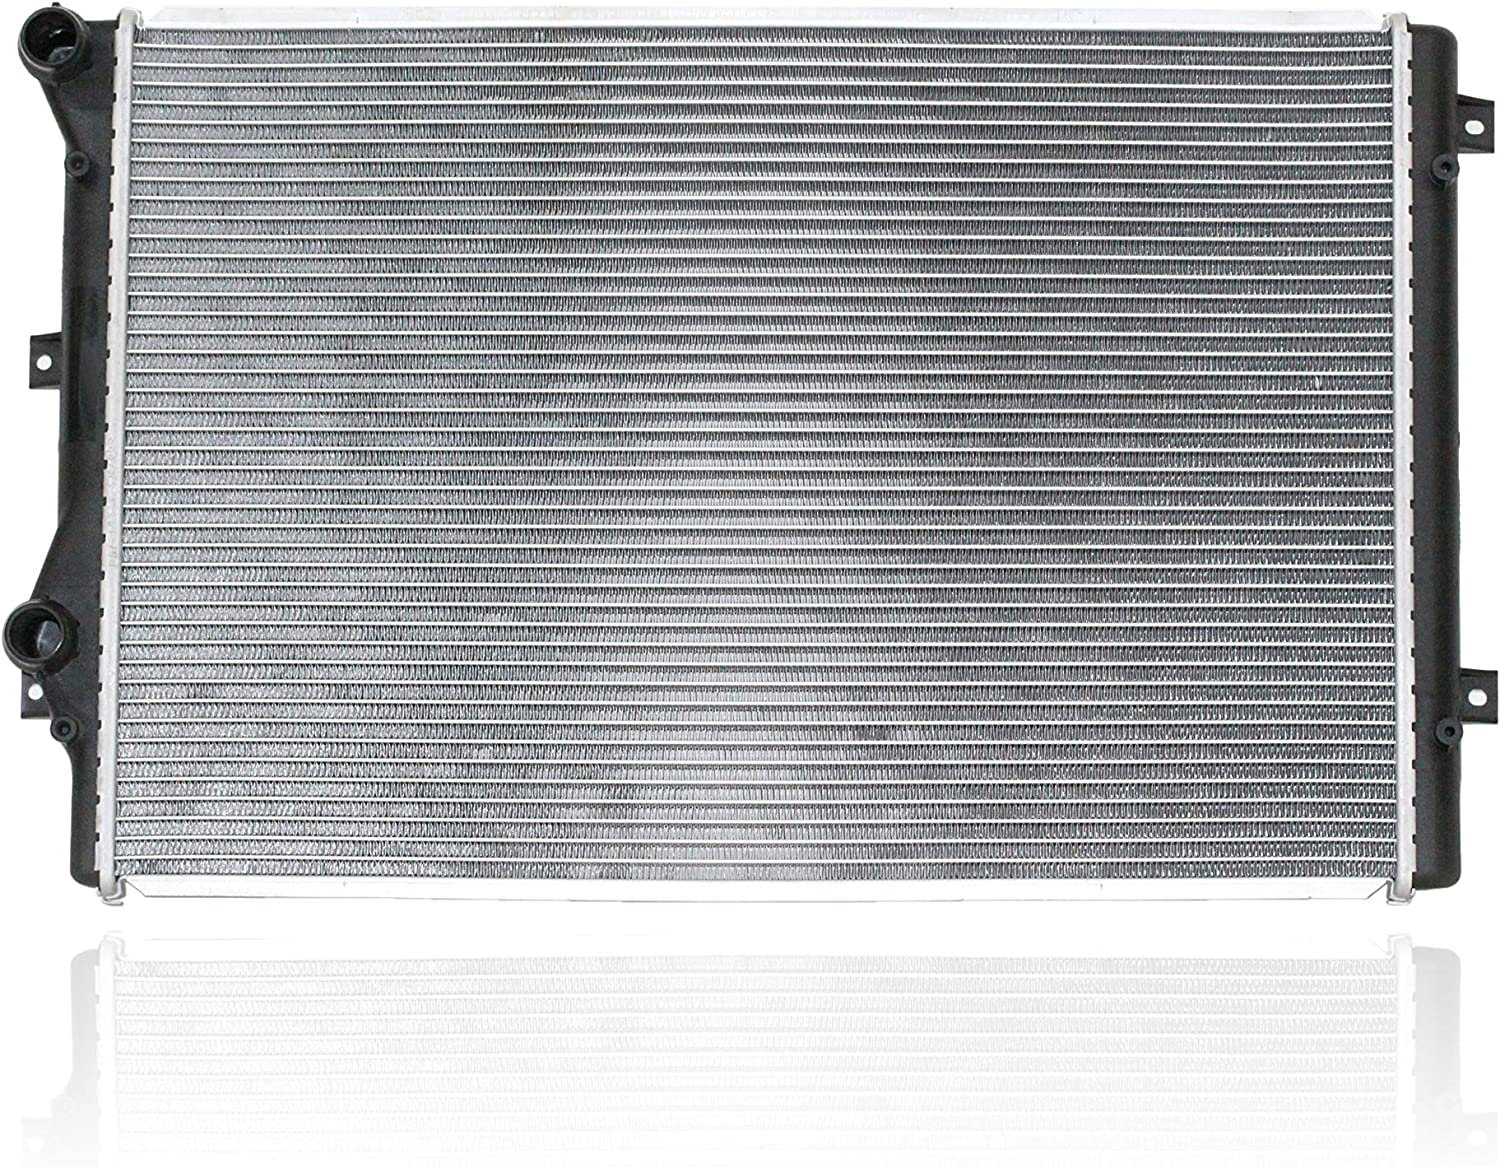 Radiator - Pacific Max 49% OFF Best Inc. Safety and trust Fit 13212 VW Volkswagen P For 09-12